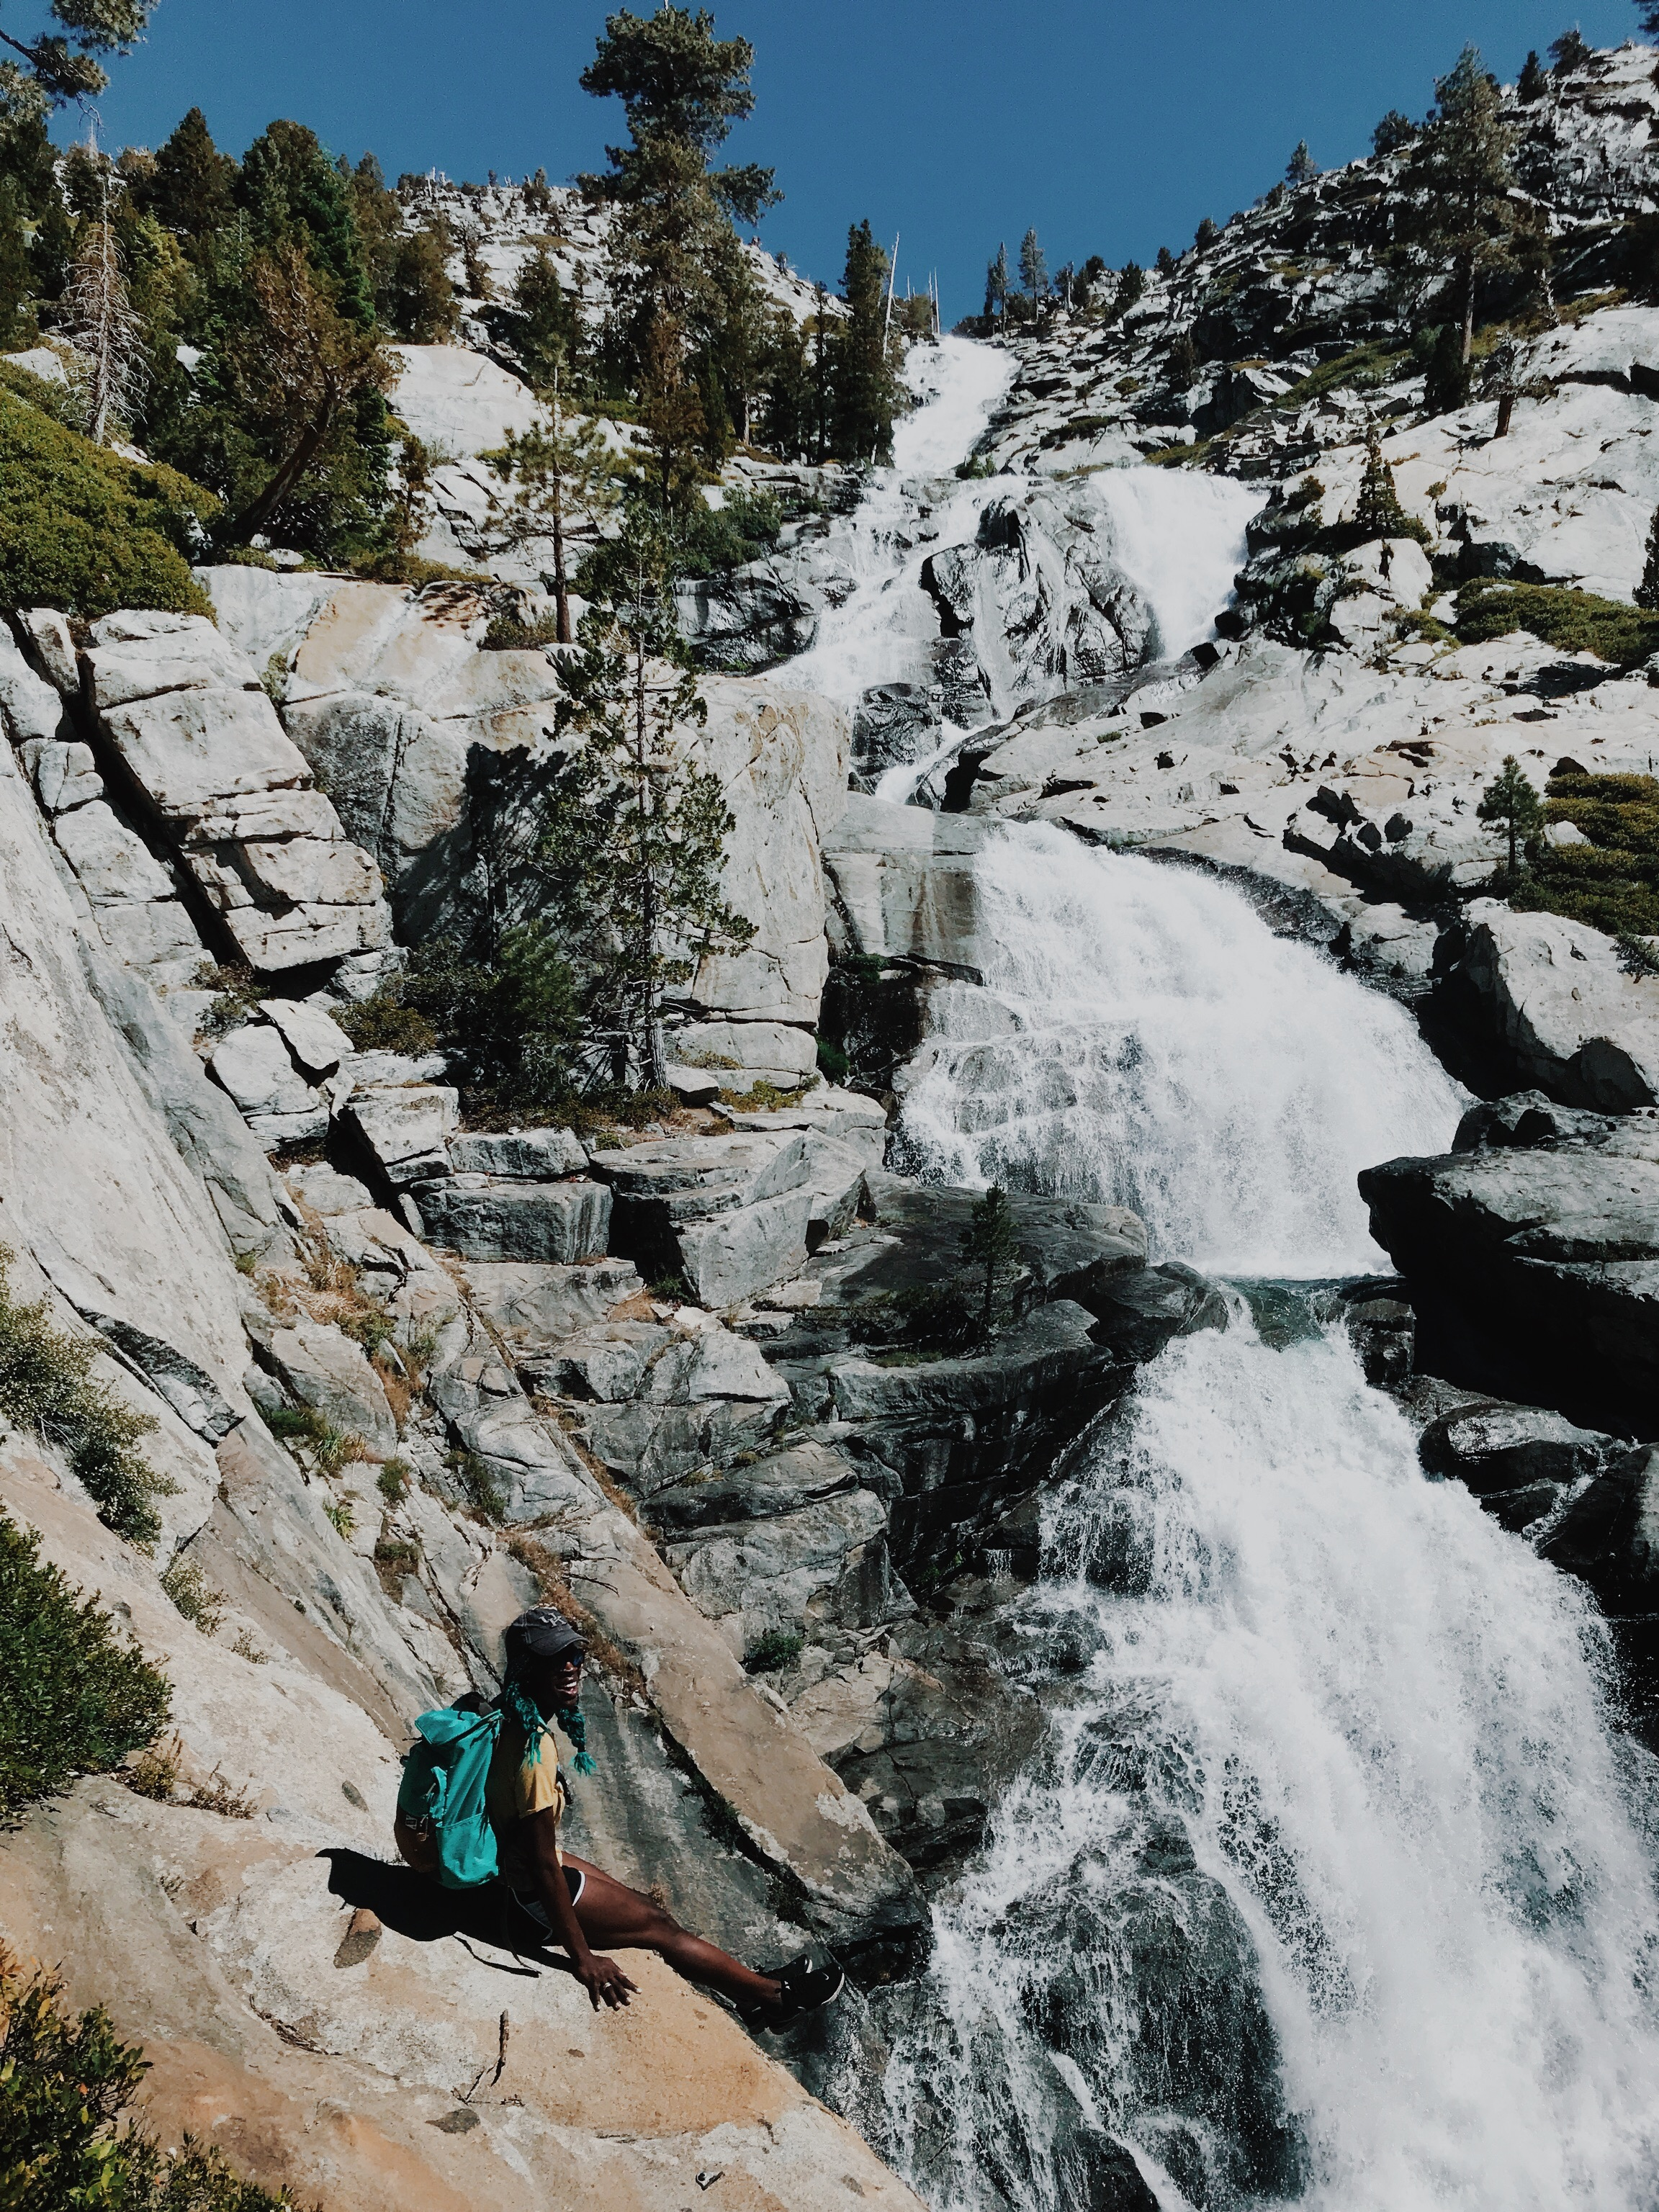 this waterfall hike had us scrambling over rocks & losing the trail repeatedly, but it was so great!